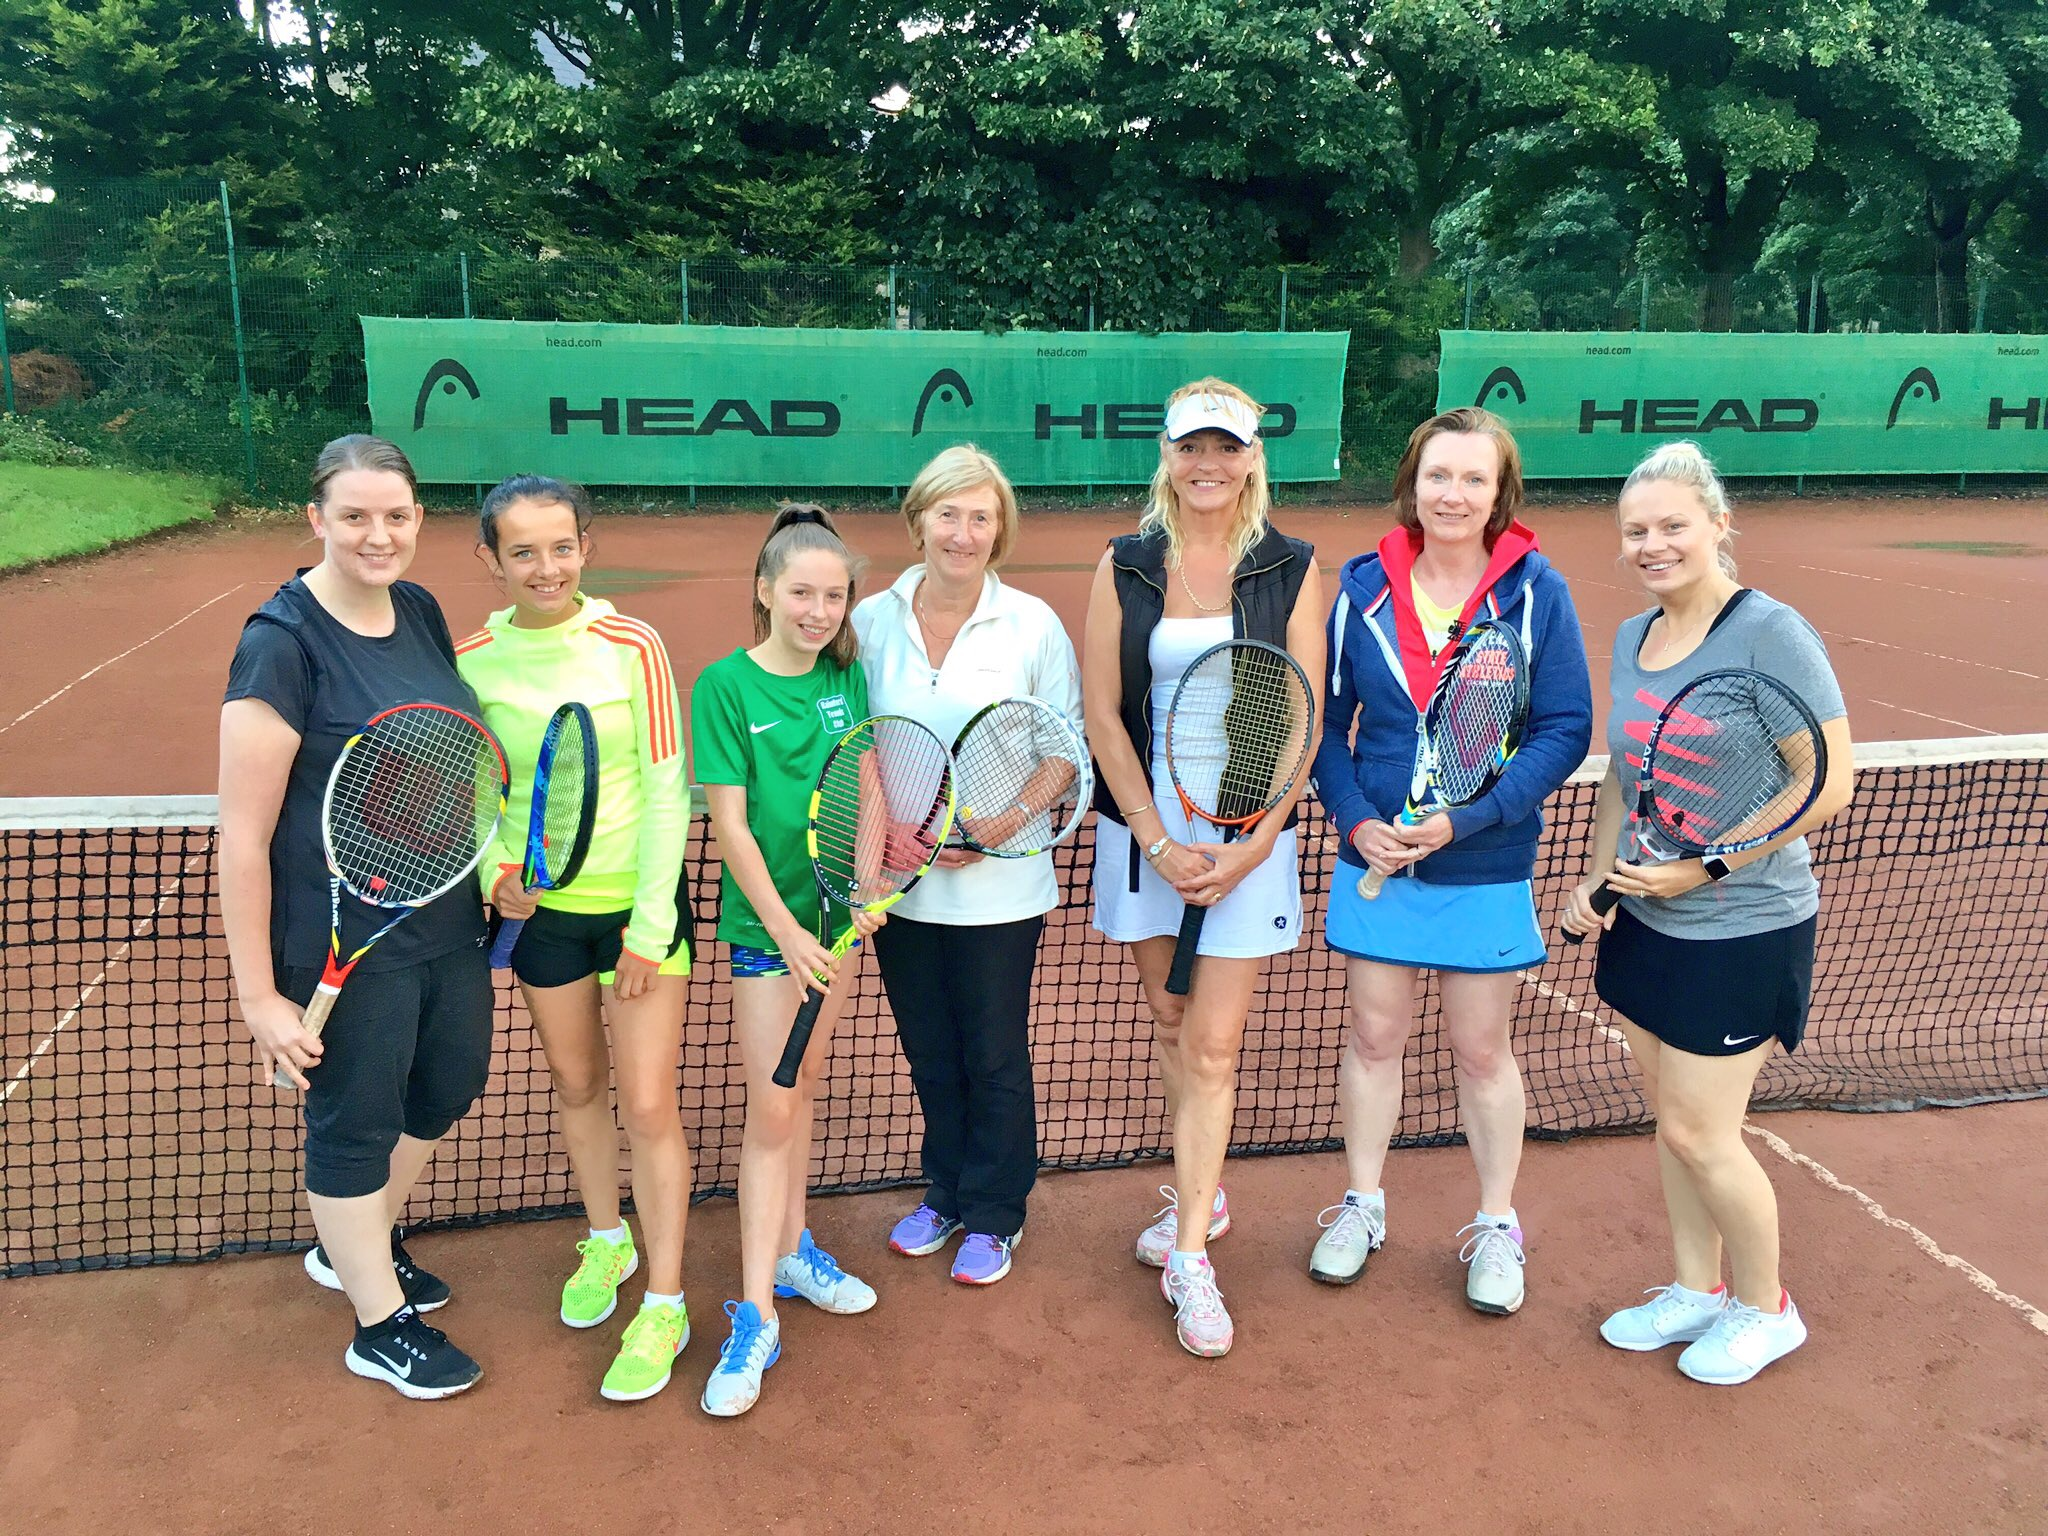 Rainford Tennis Club's women's team, captained by Anne Moyers